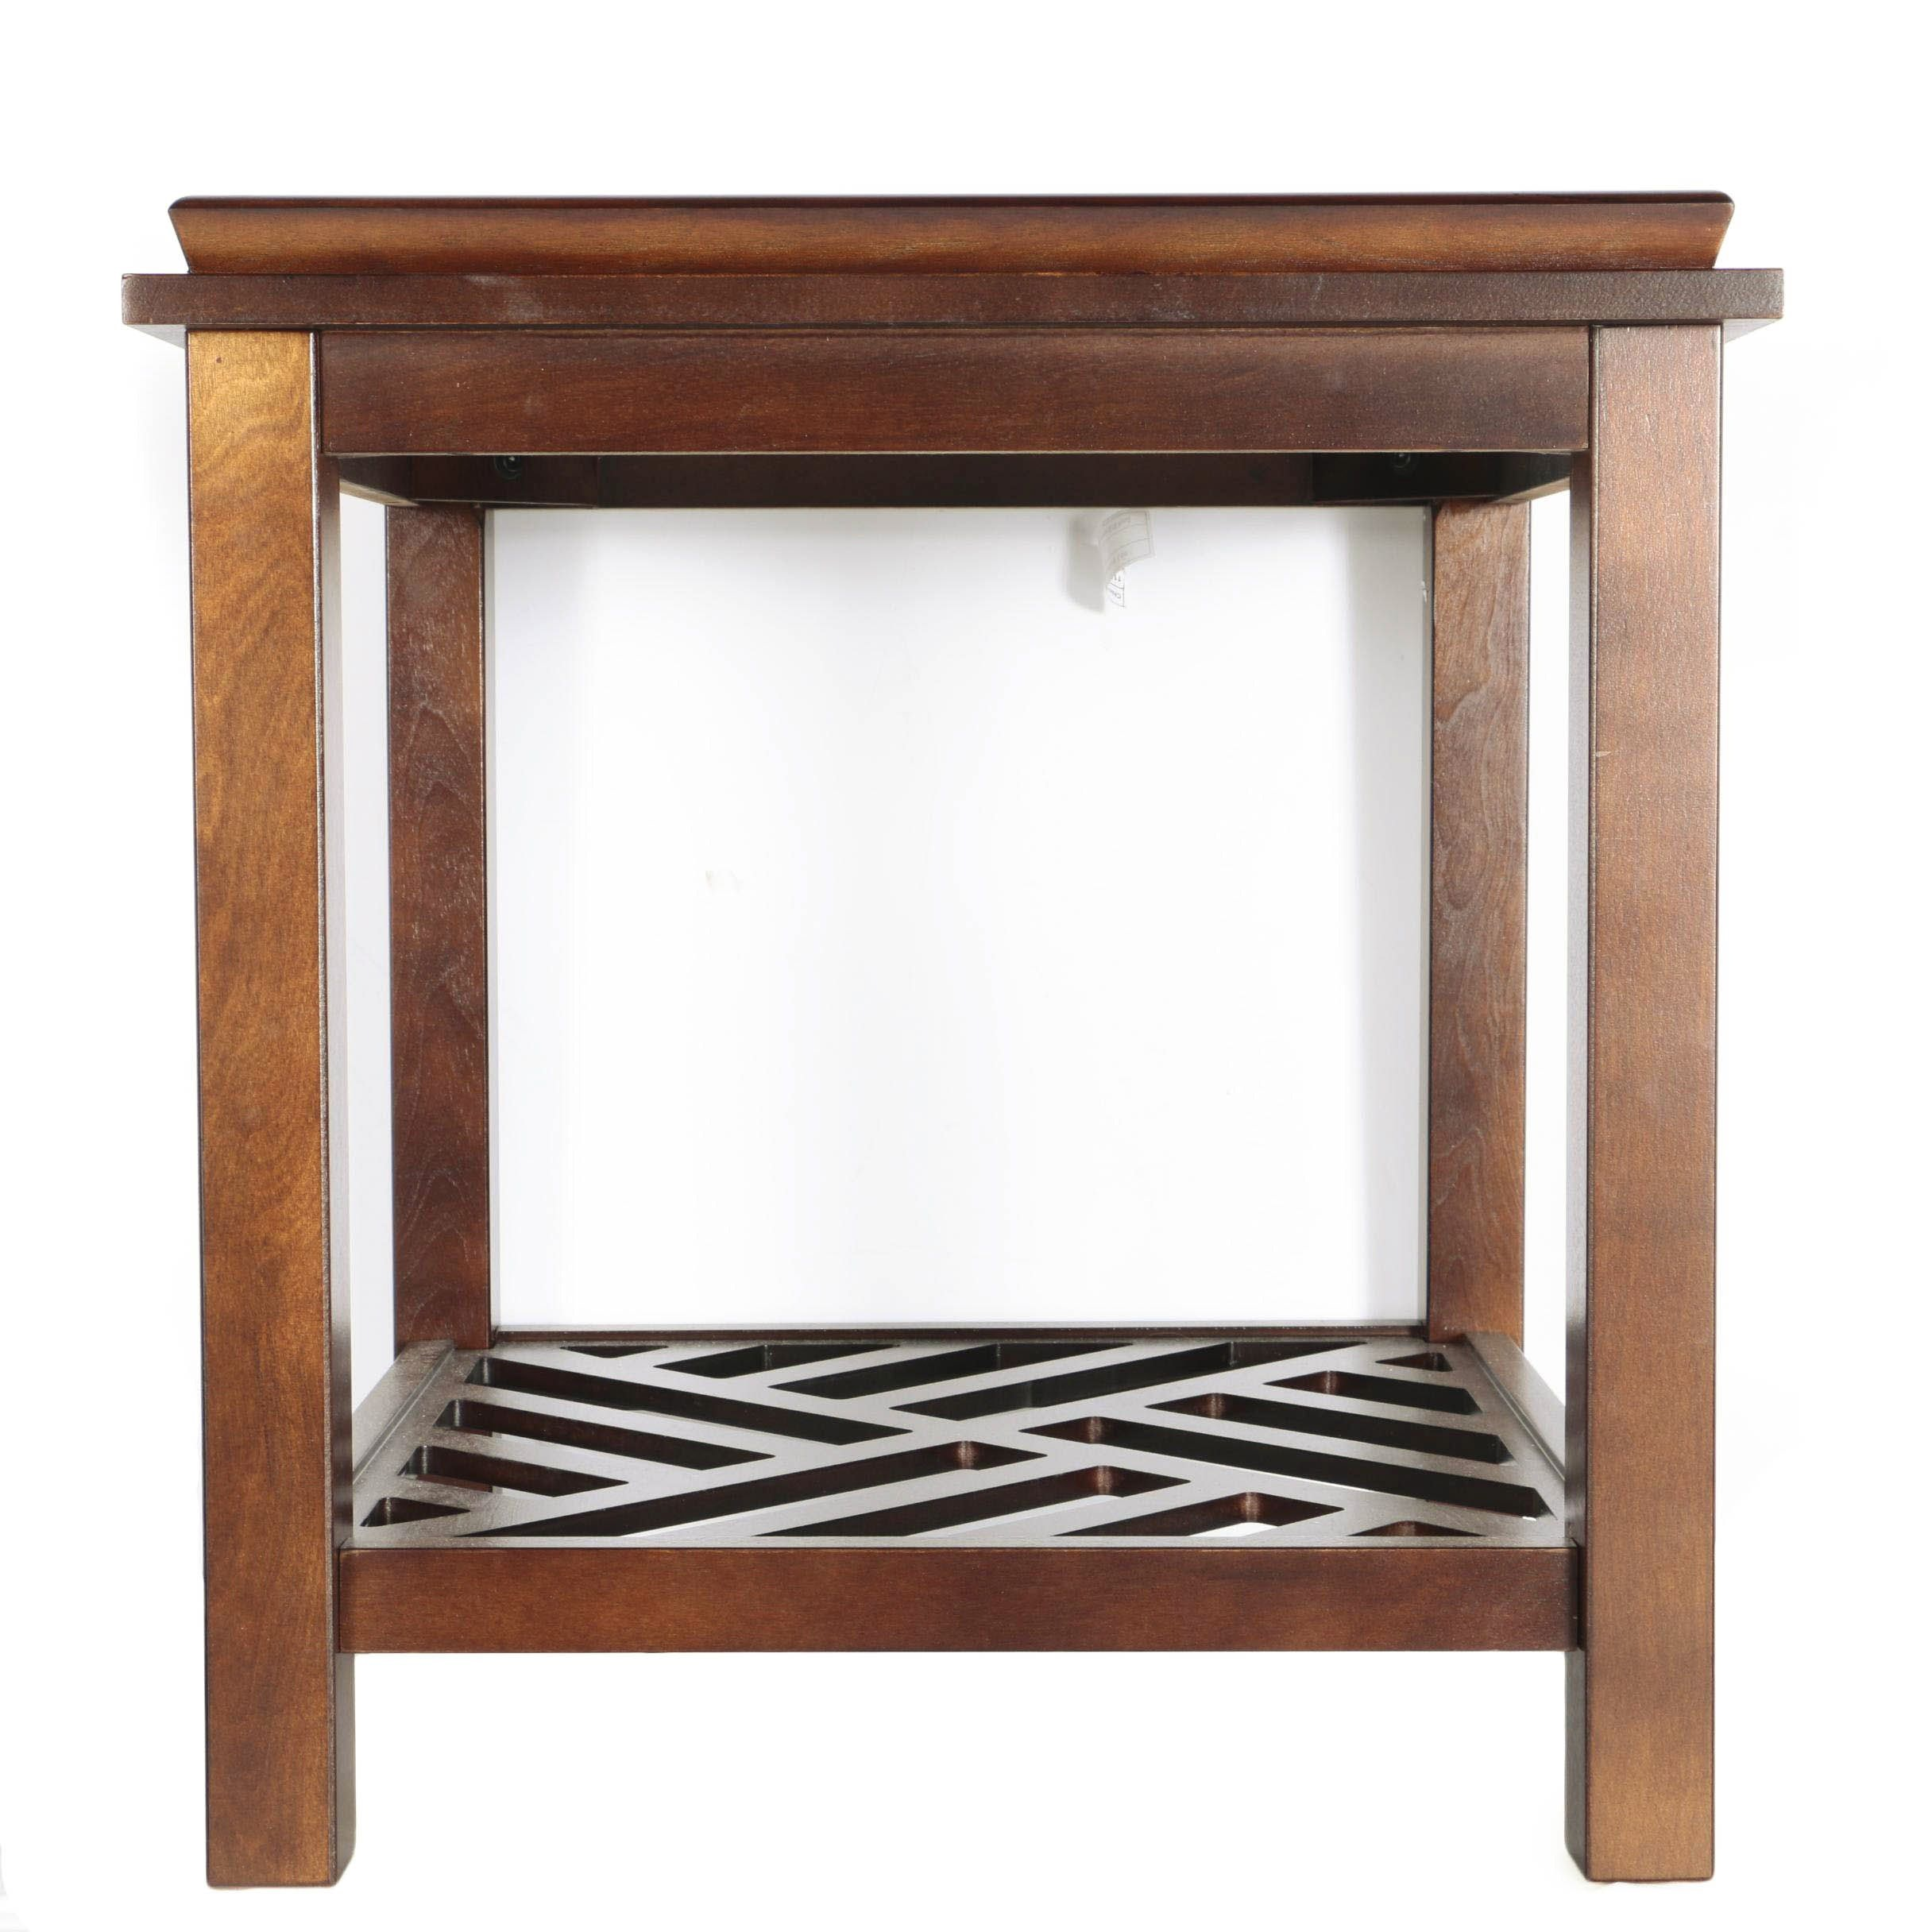 Chinese Glass Top Side Table by Chin-Shu Wooden Ltd.